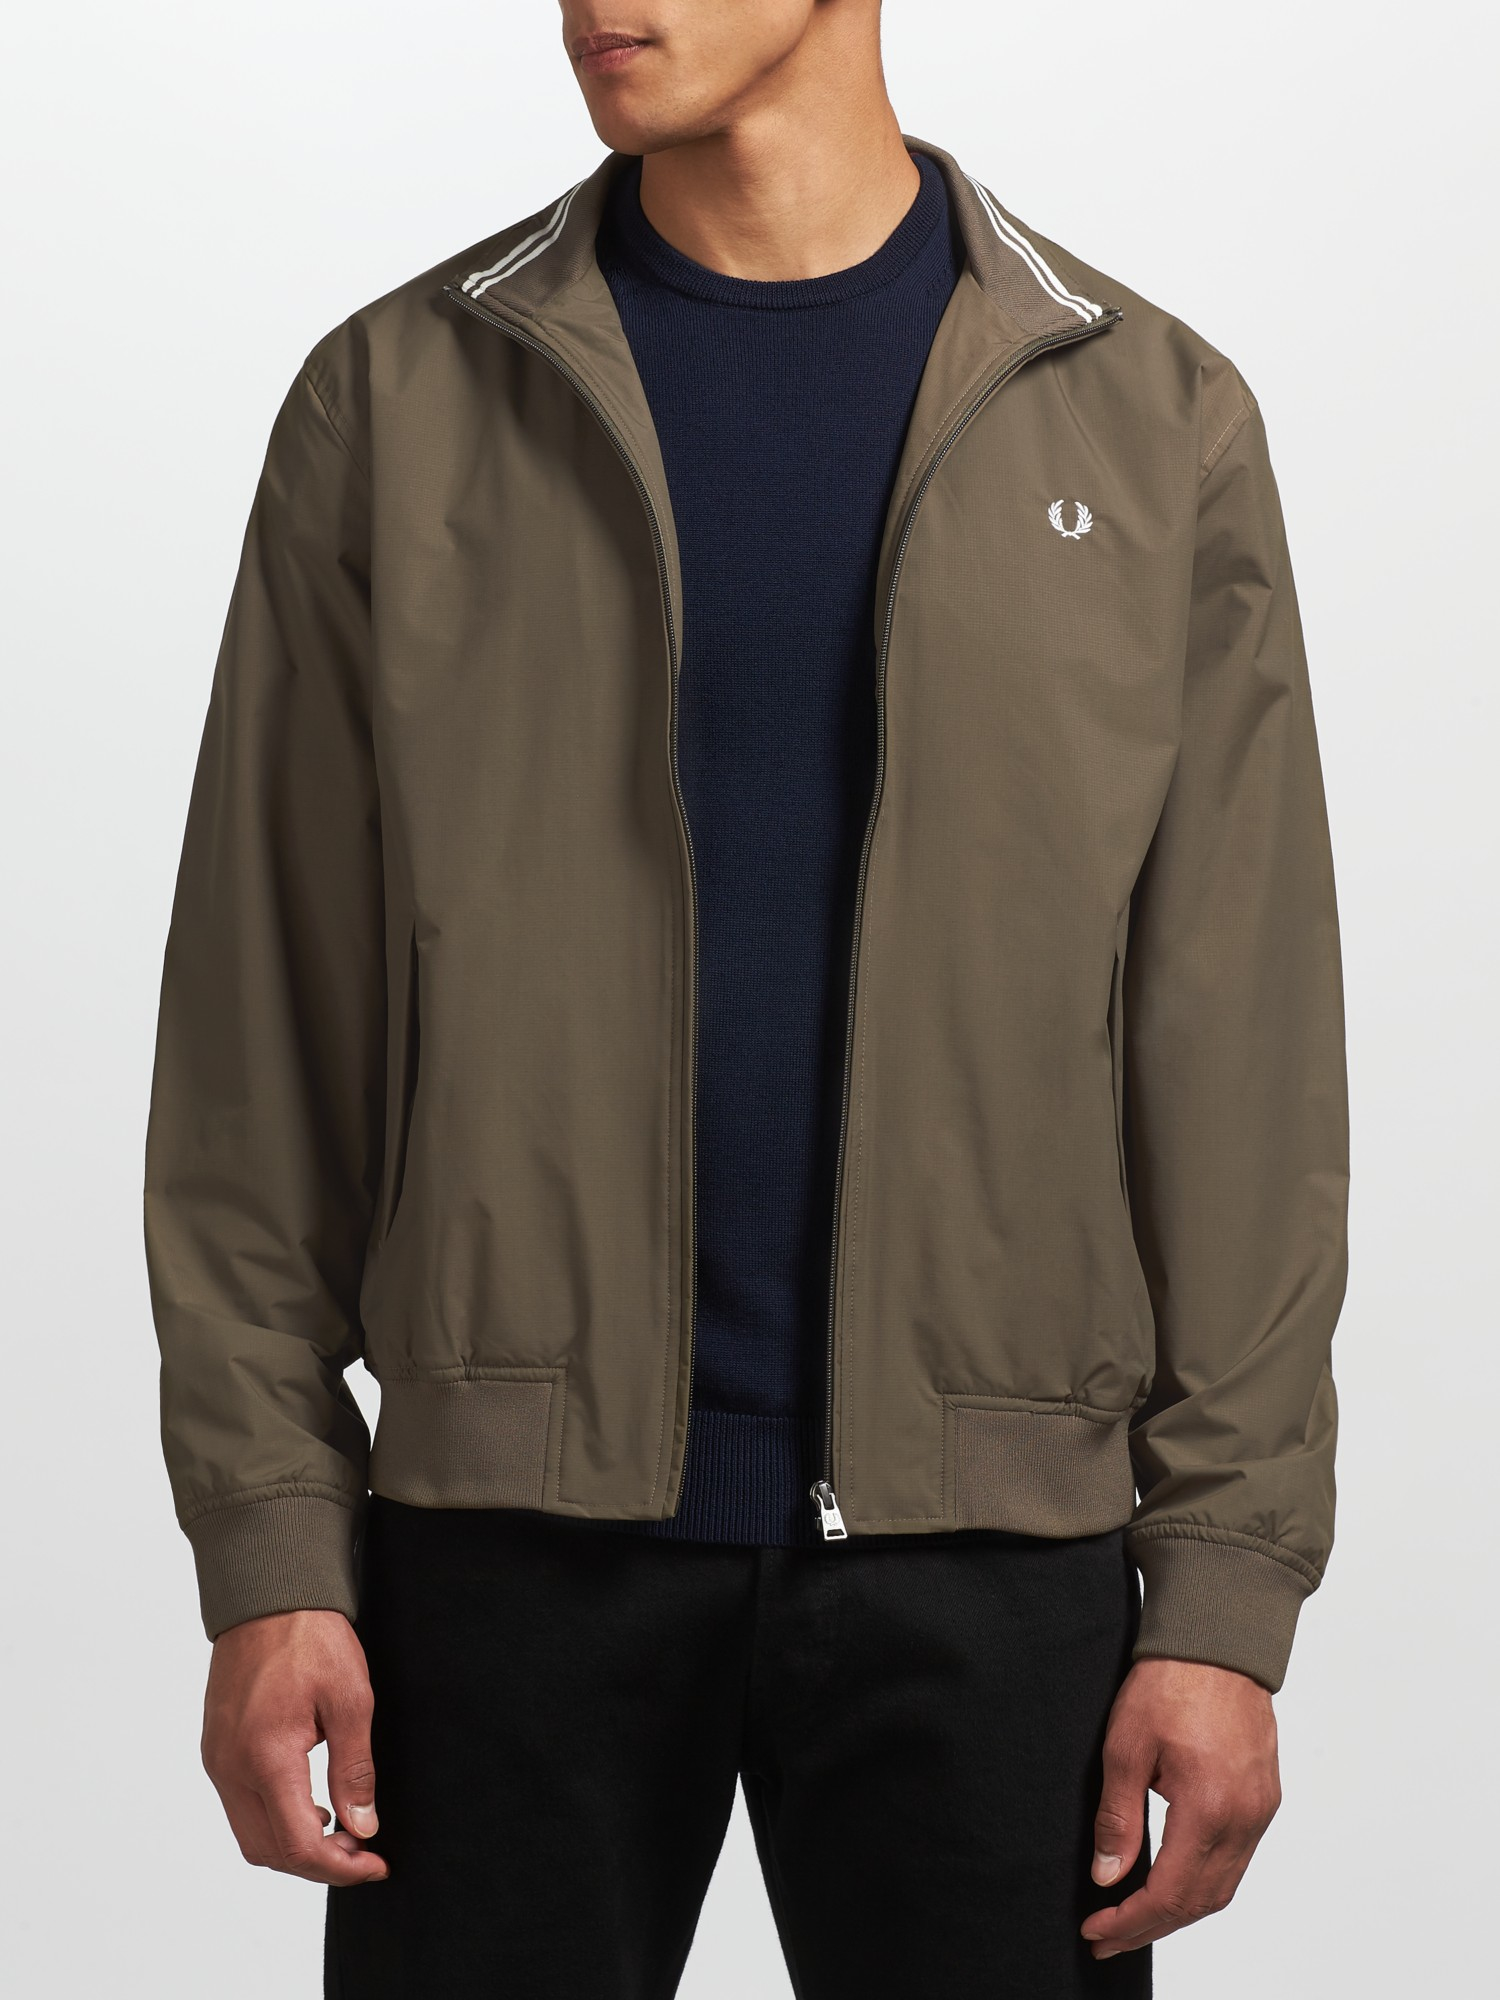 Fred perry womens jackets